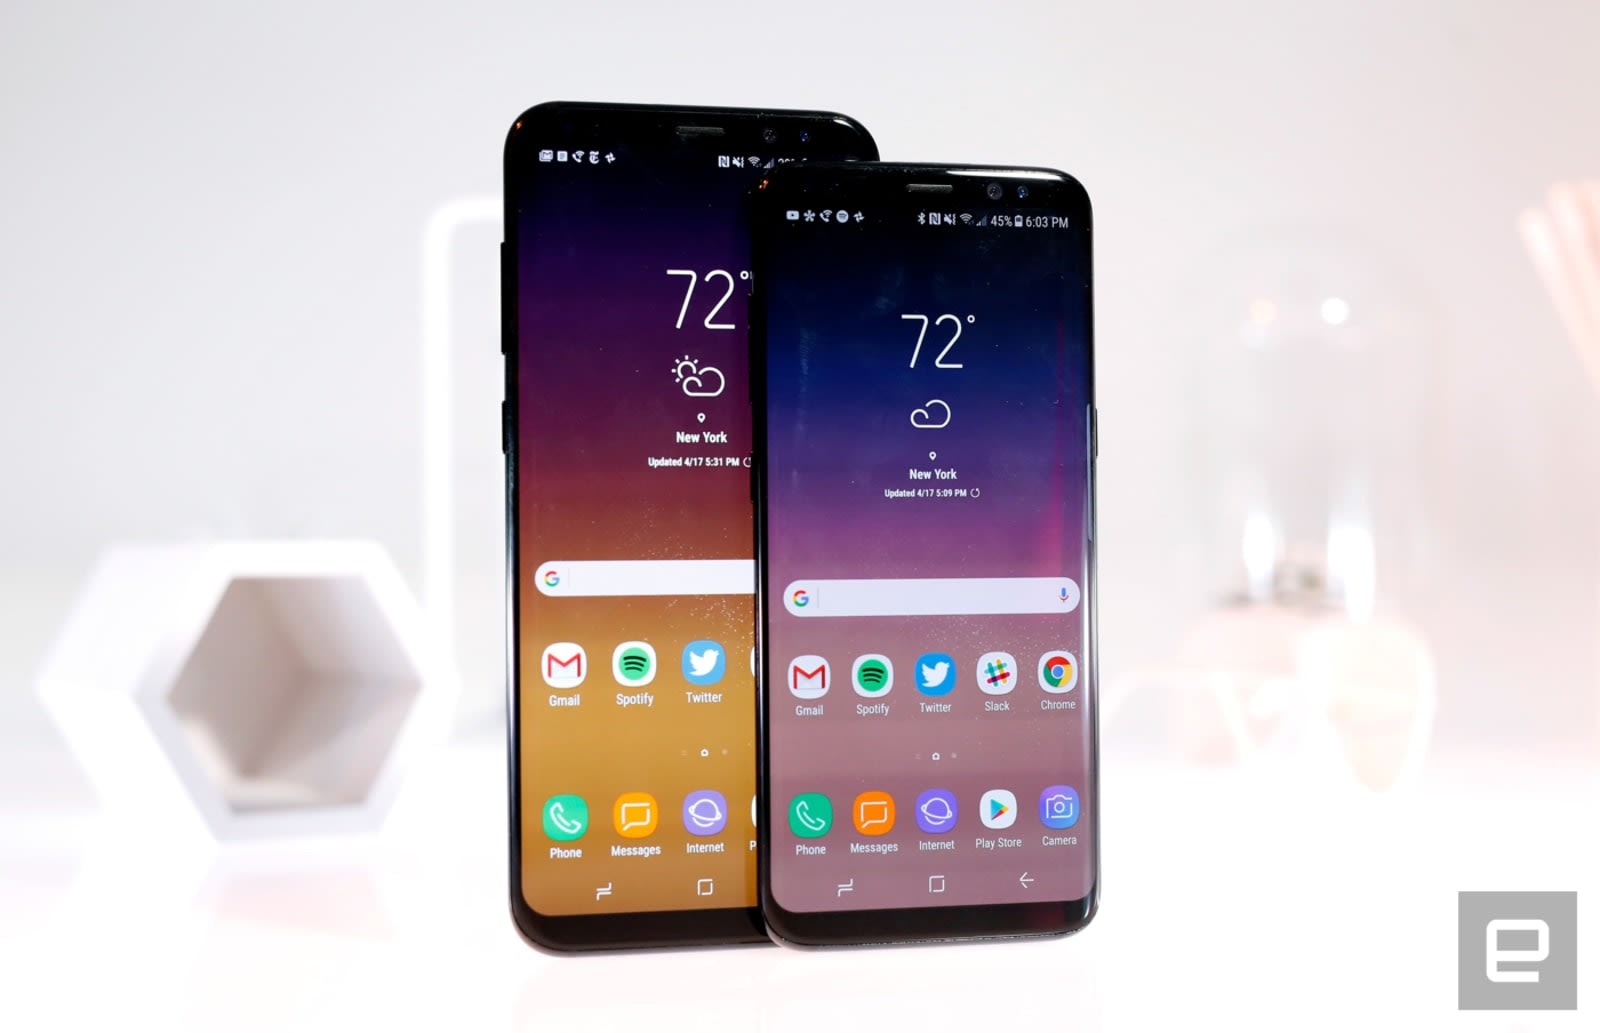 Samsung's redesigned One UI will come to Galaxy S8 and Note 8